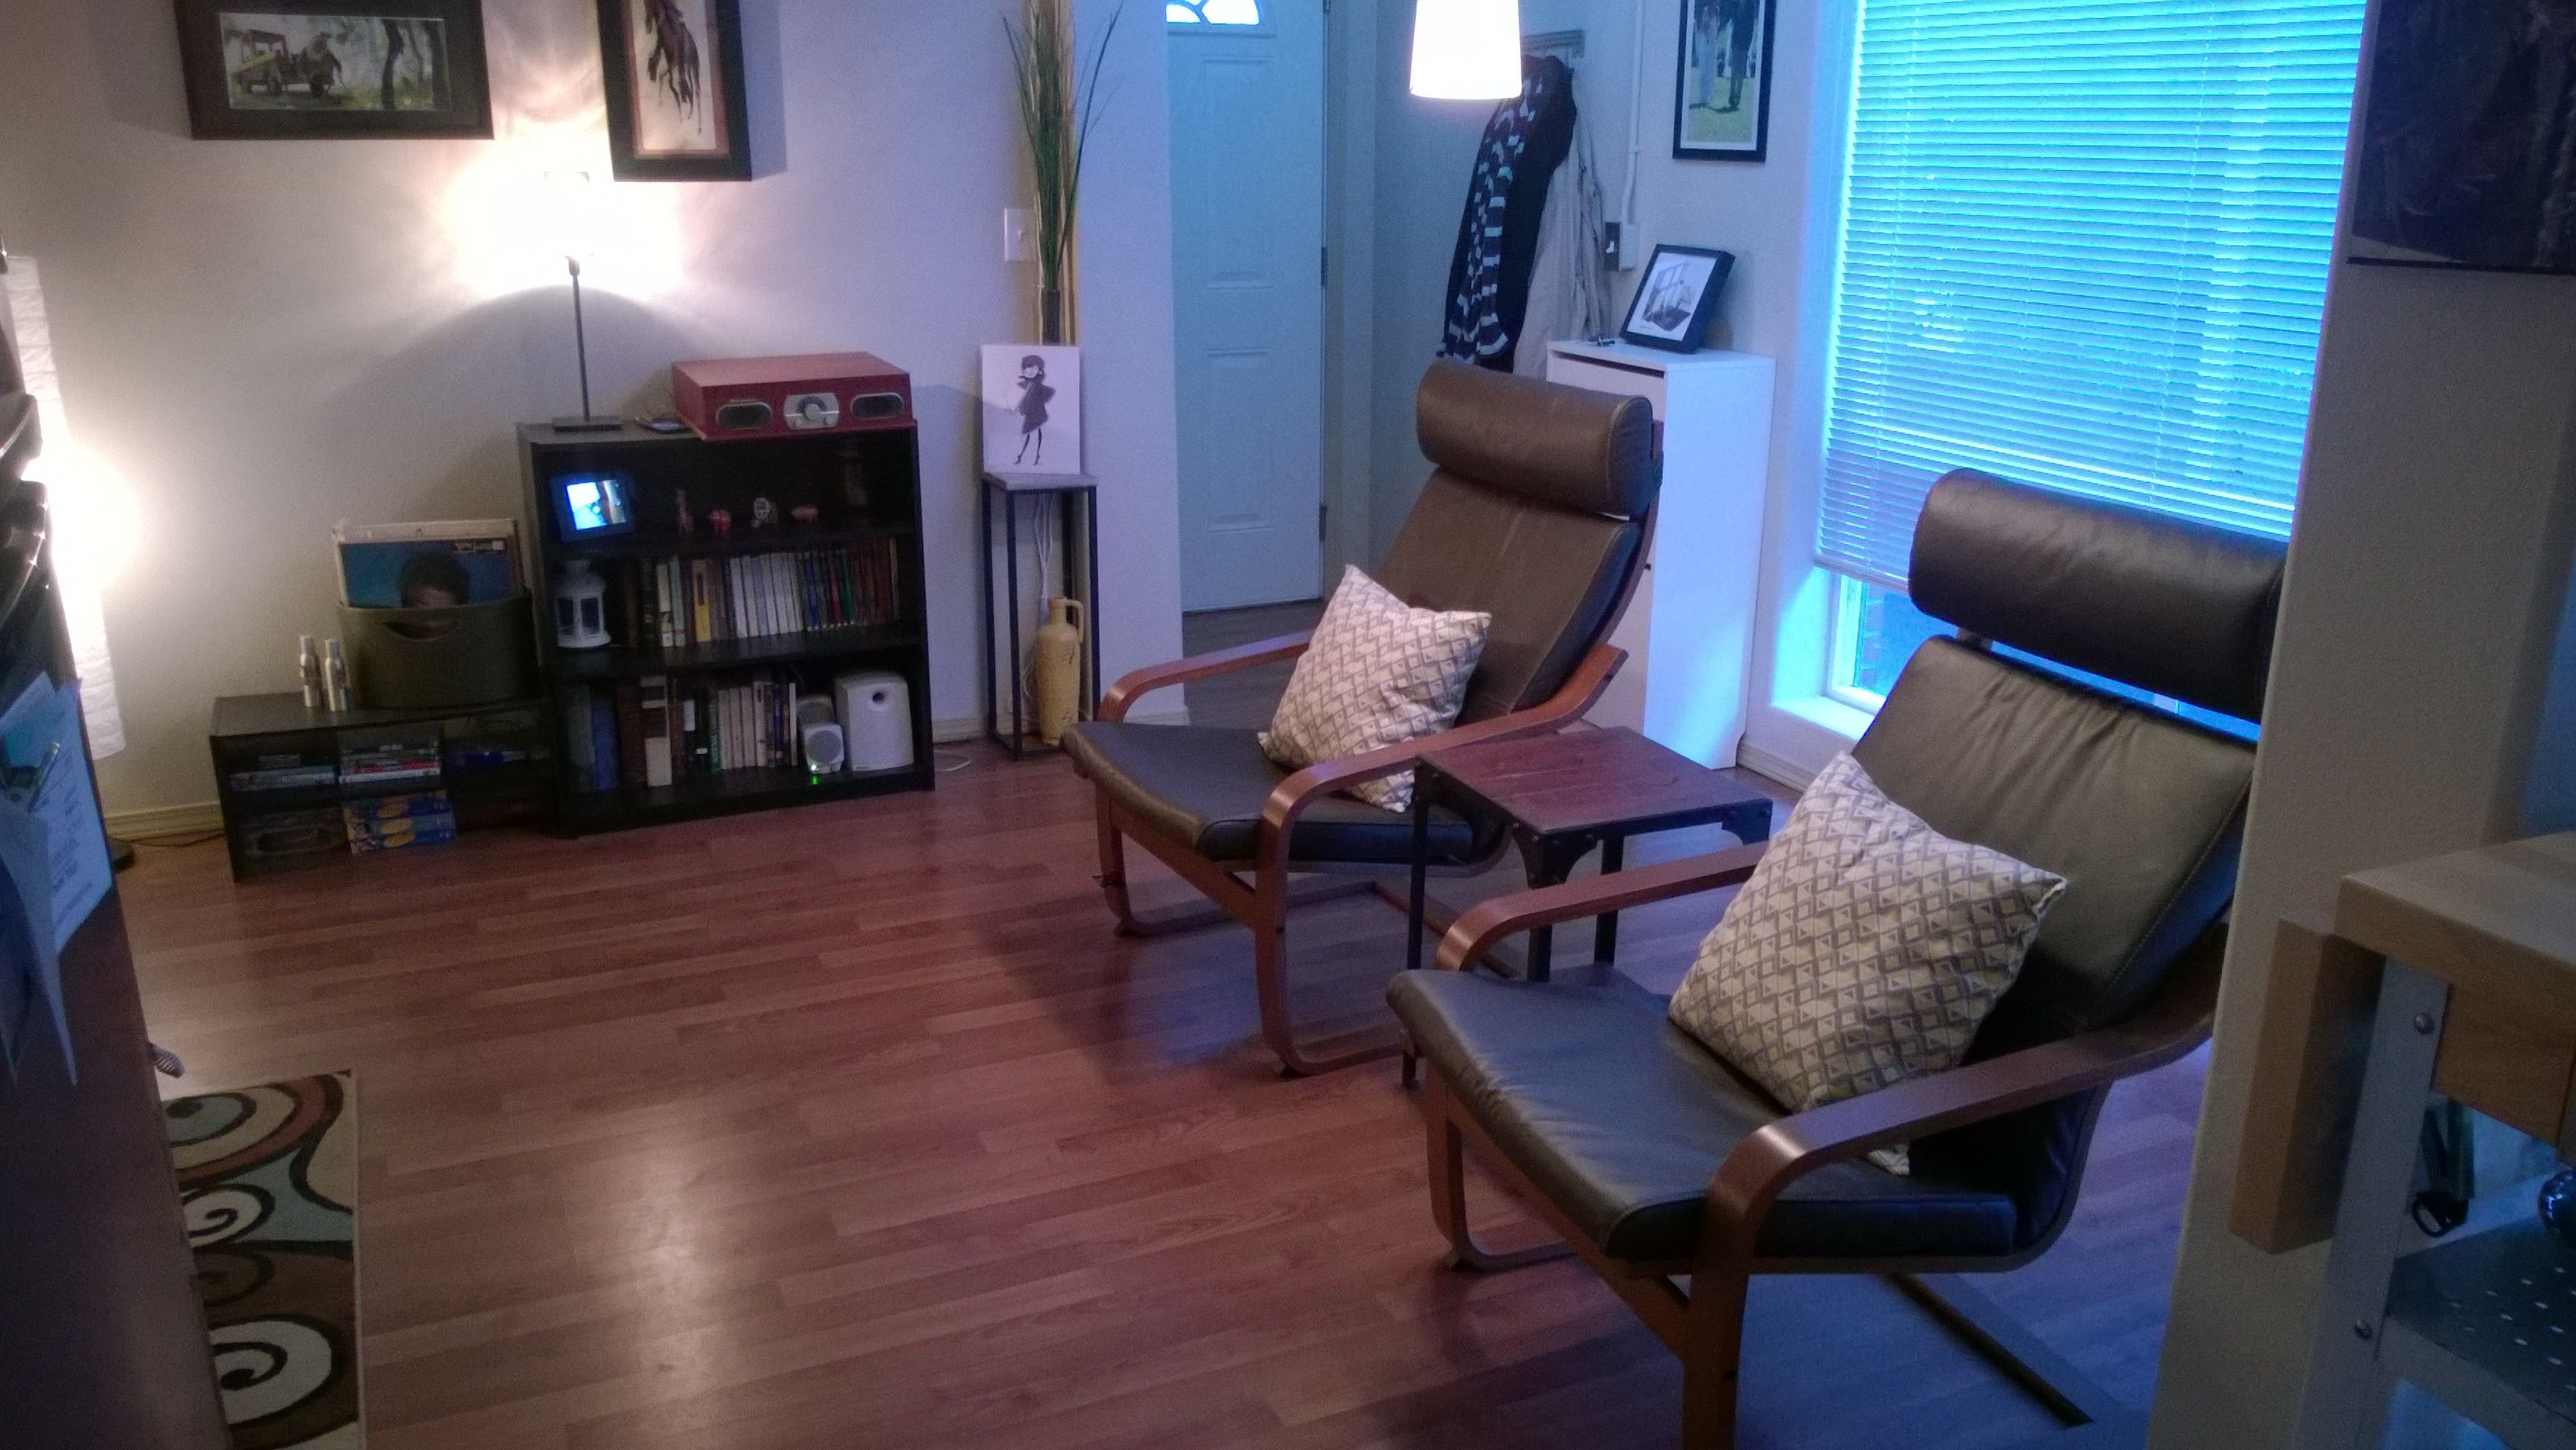 Poang chairs from Ikea in our tiny living room in our downtown